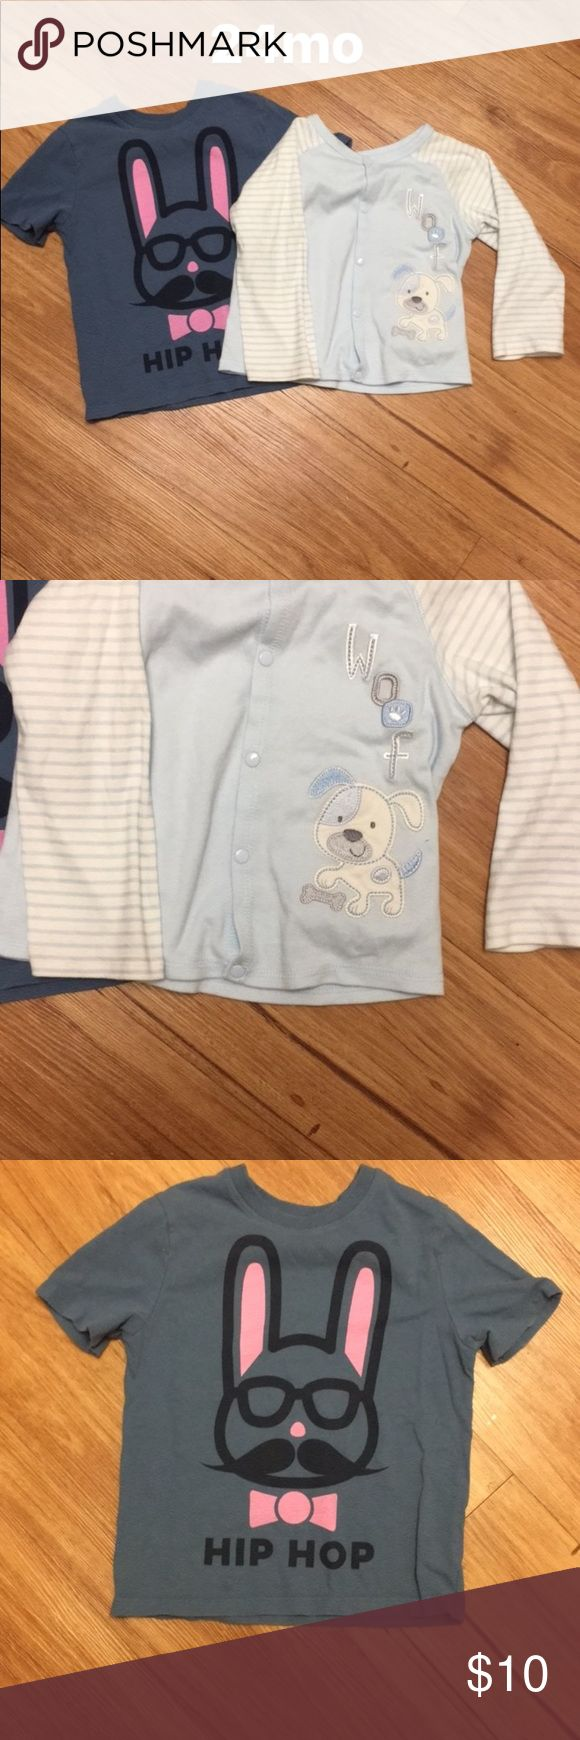 Baby Gap tshirt and light blue wrap top 24mo. Brand NWOT light blue stripe wrap top, long sleep. Preloved Gap tshirt, no stains/ damage/ washed only with dreft. Pet free smoke free home GAP Shirts & Tops Tees - Long Sleeve